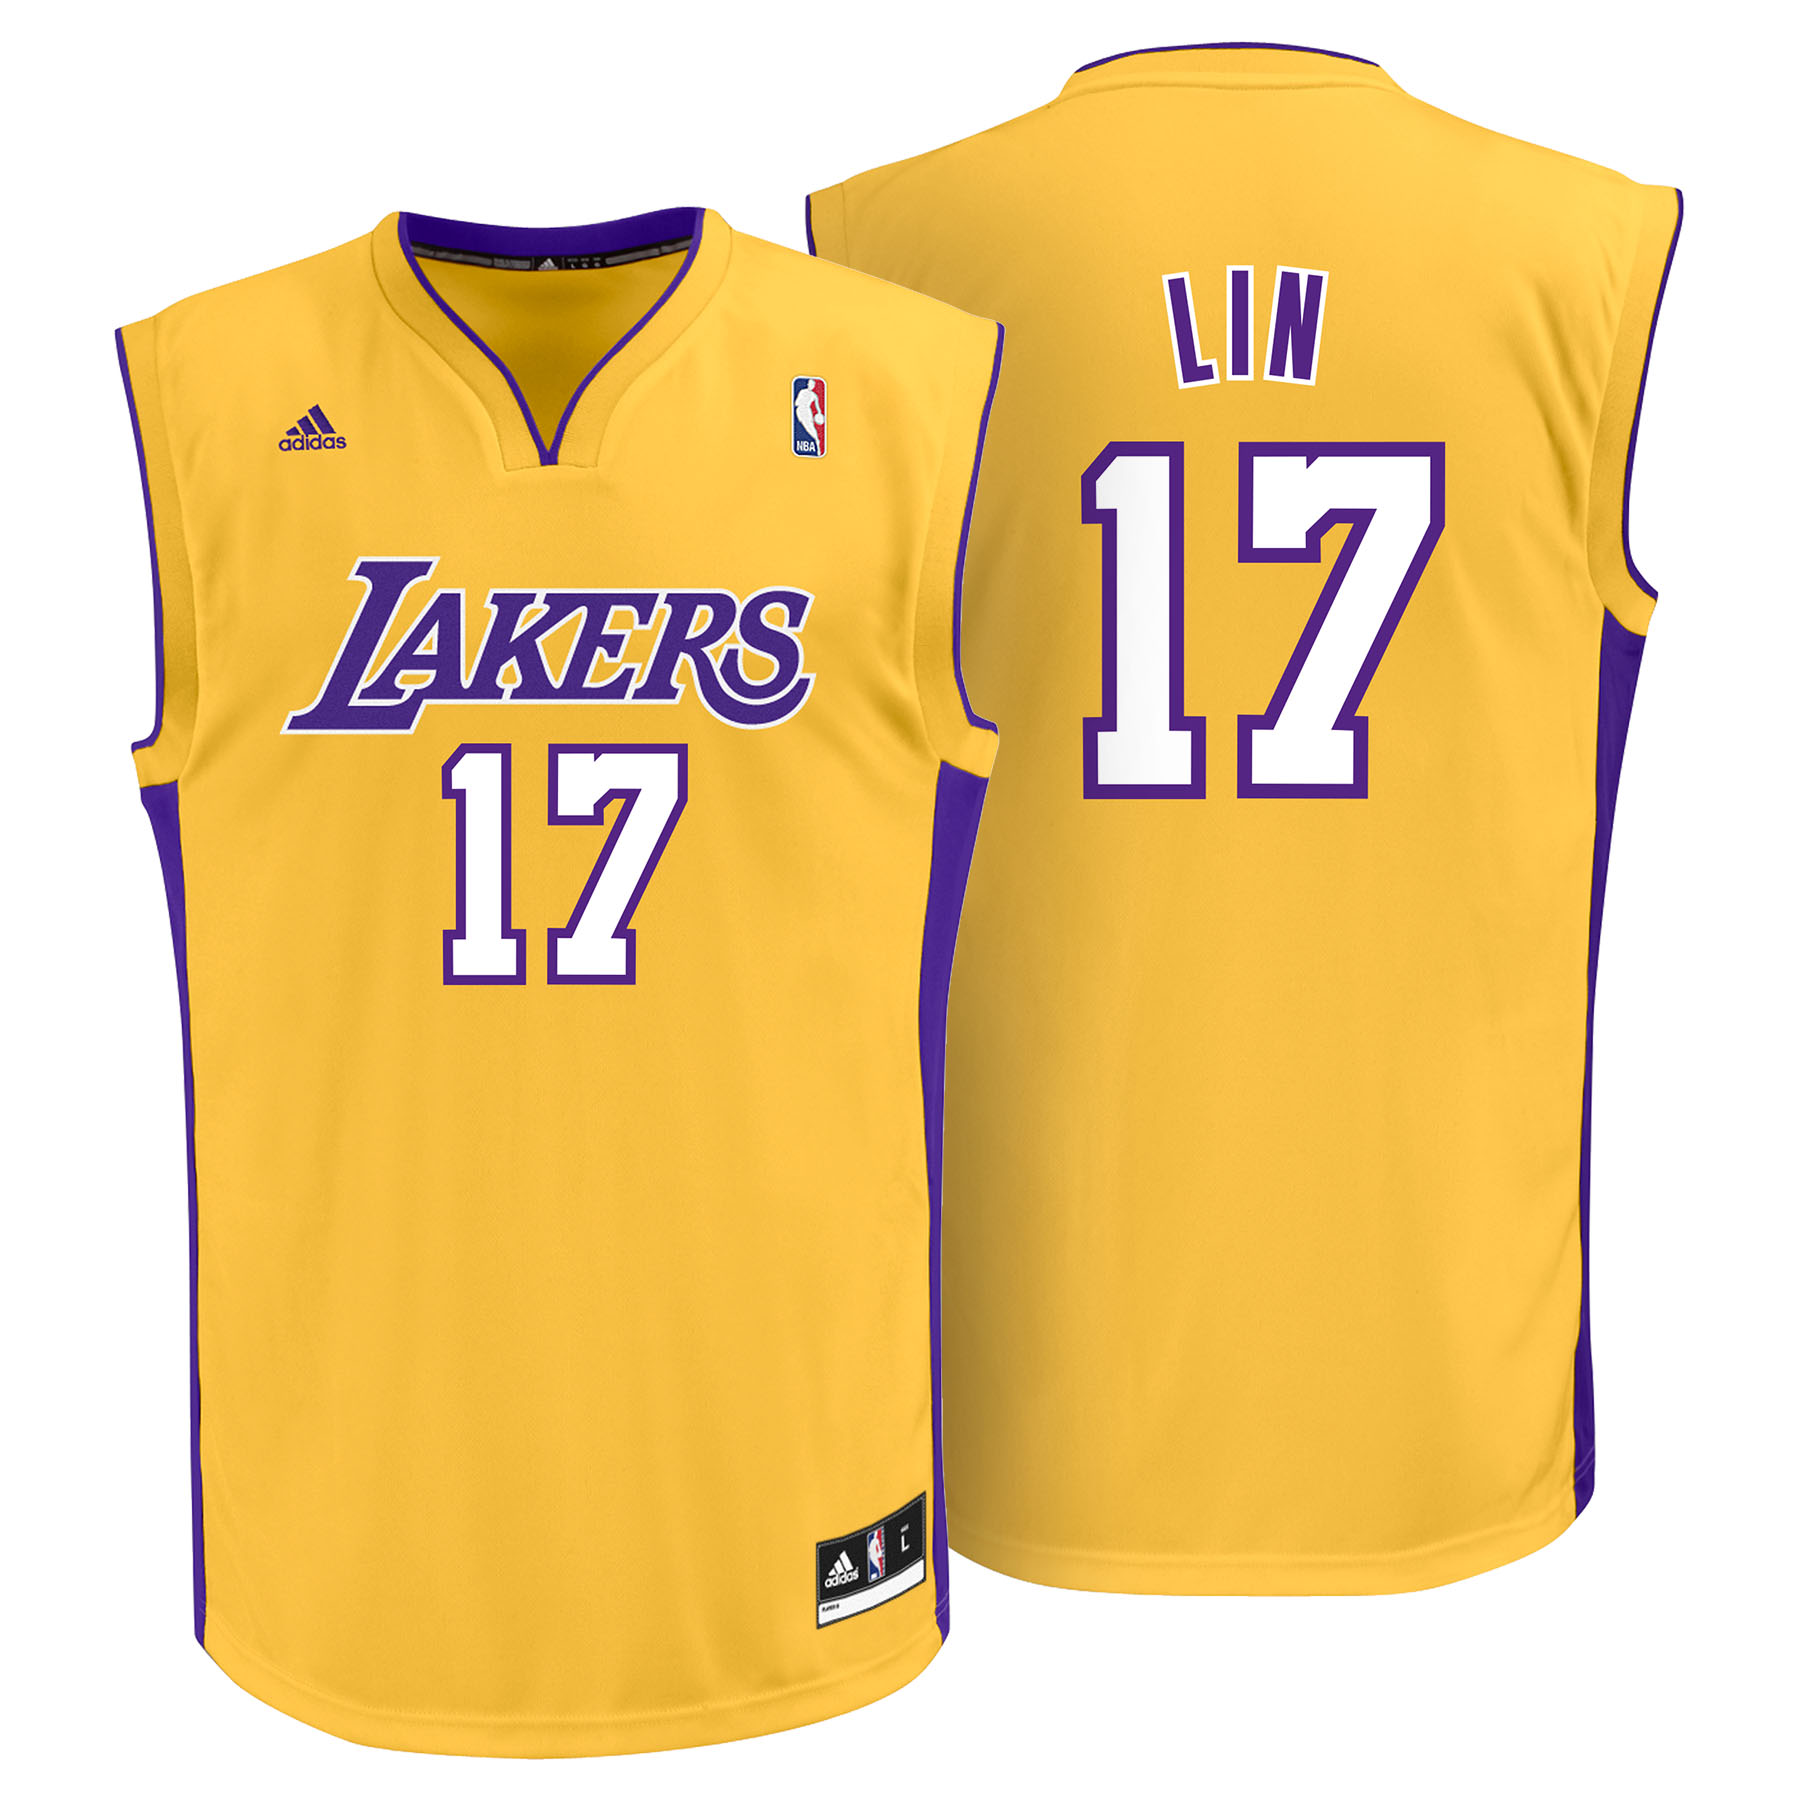 Los Angeles Lakers Home Replica Jersey - Jeremy Lin - Mens